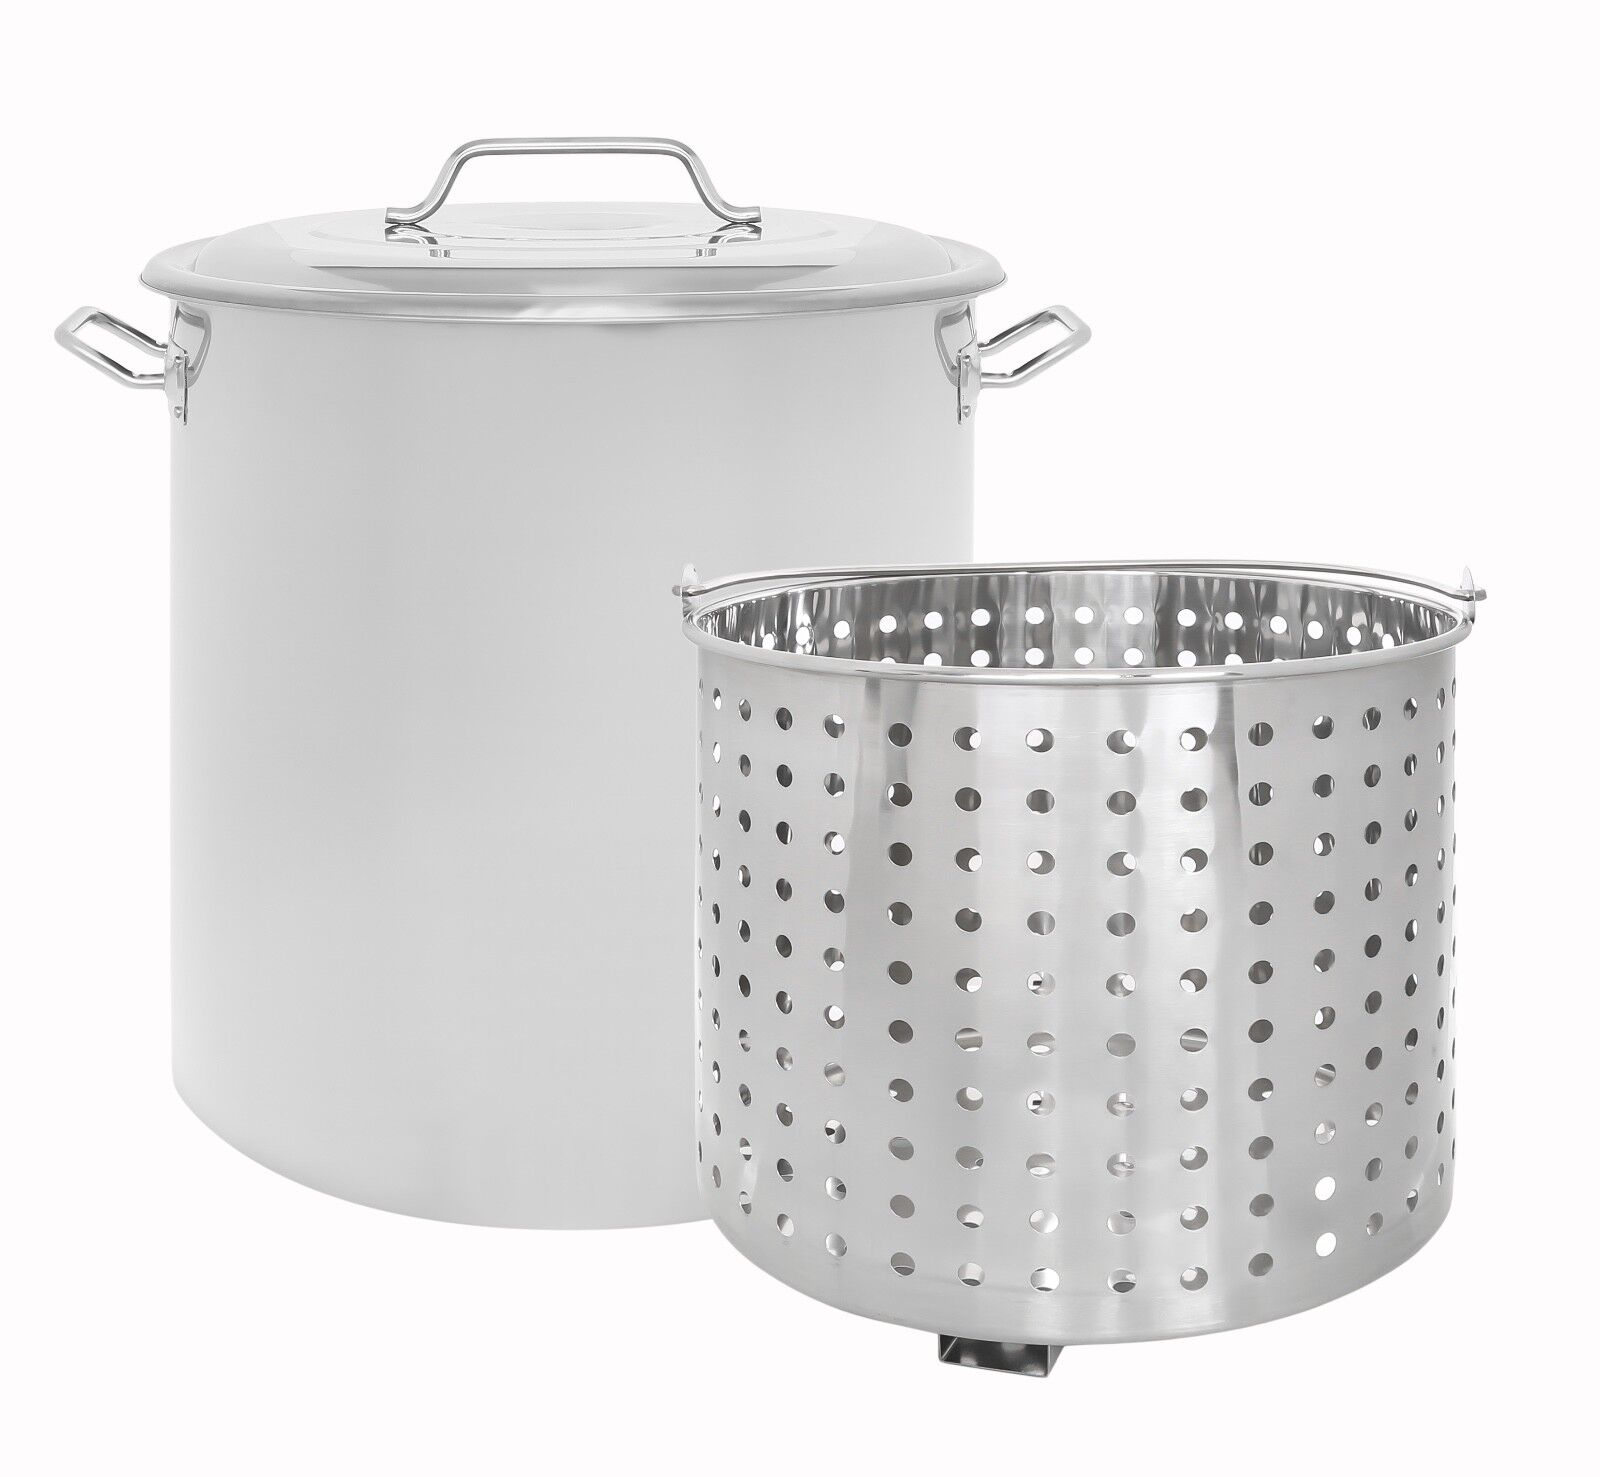 CONCORD Stainless Steel Stock Pot w/Steamer Basket Cookware